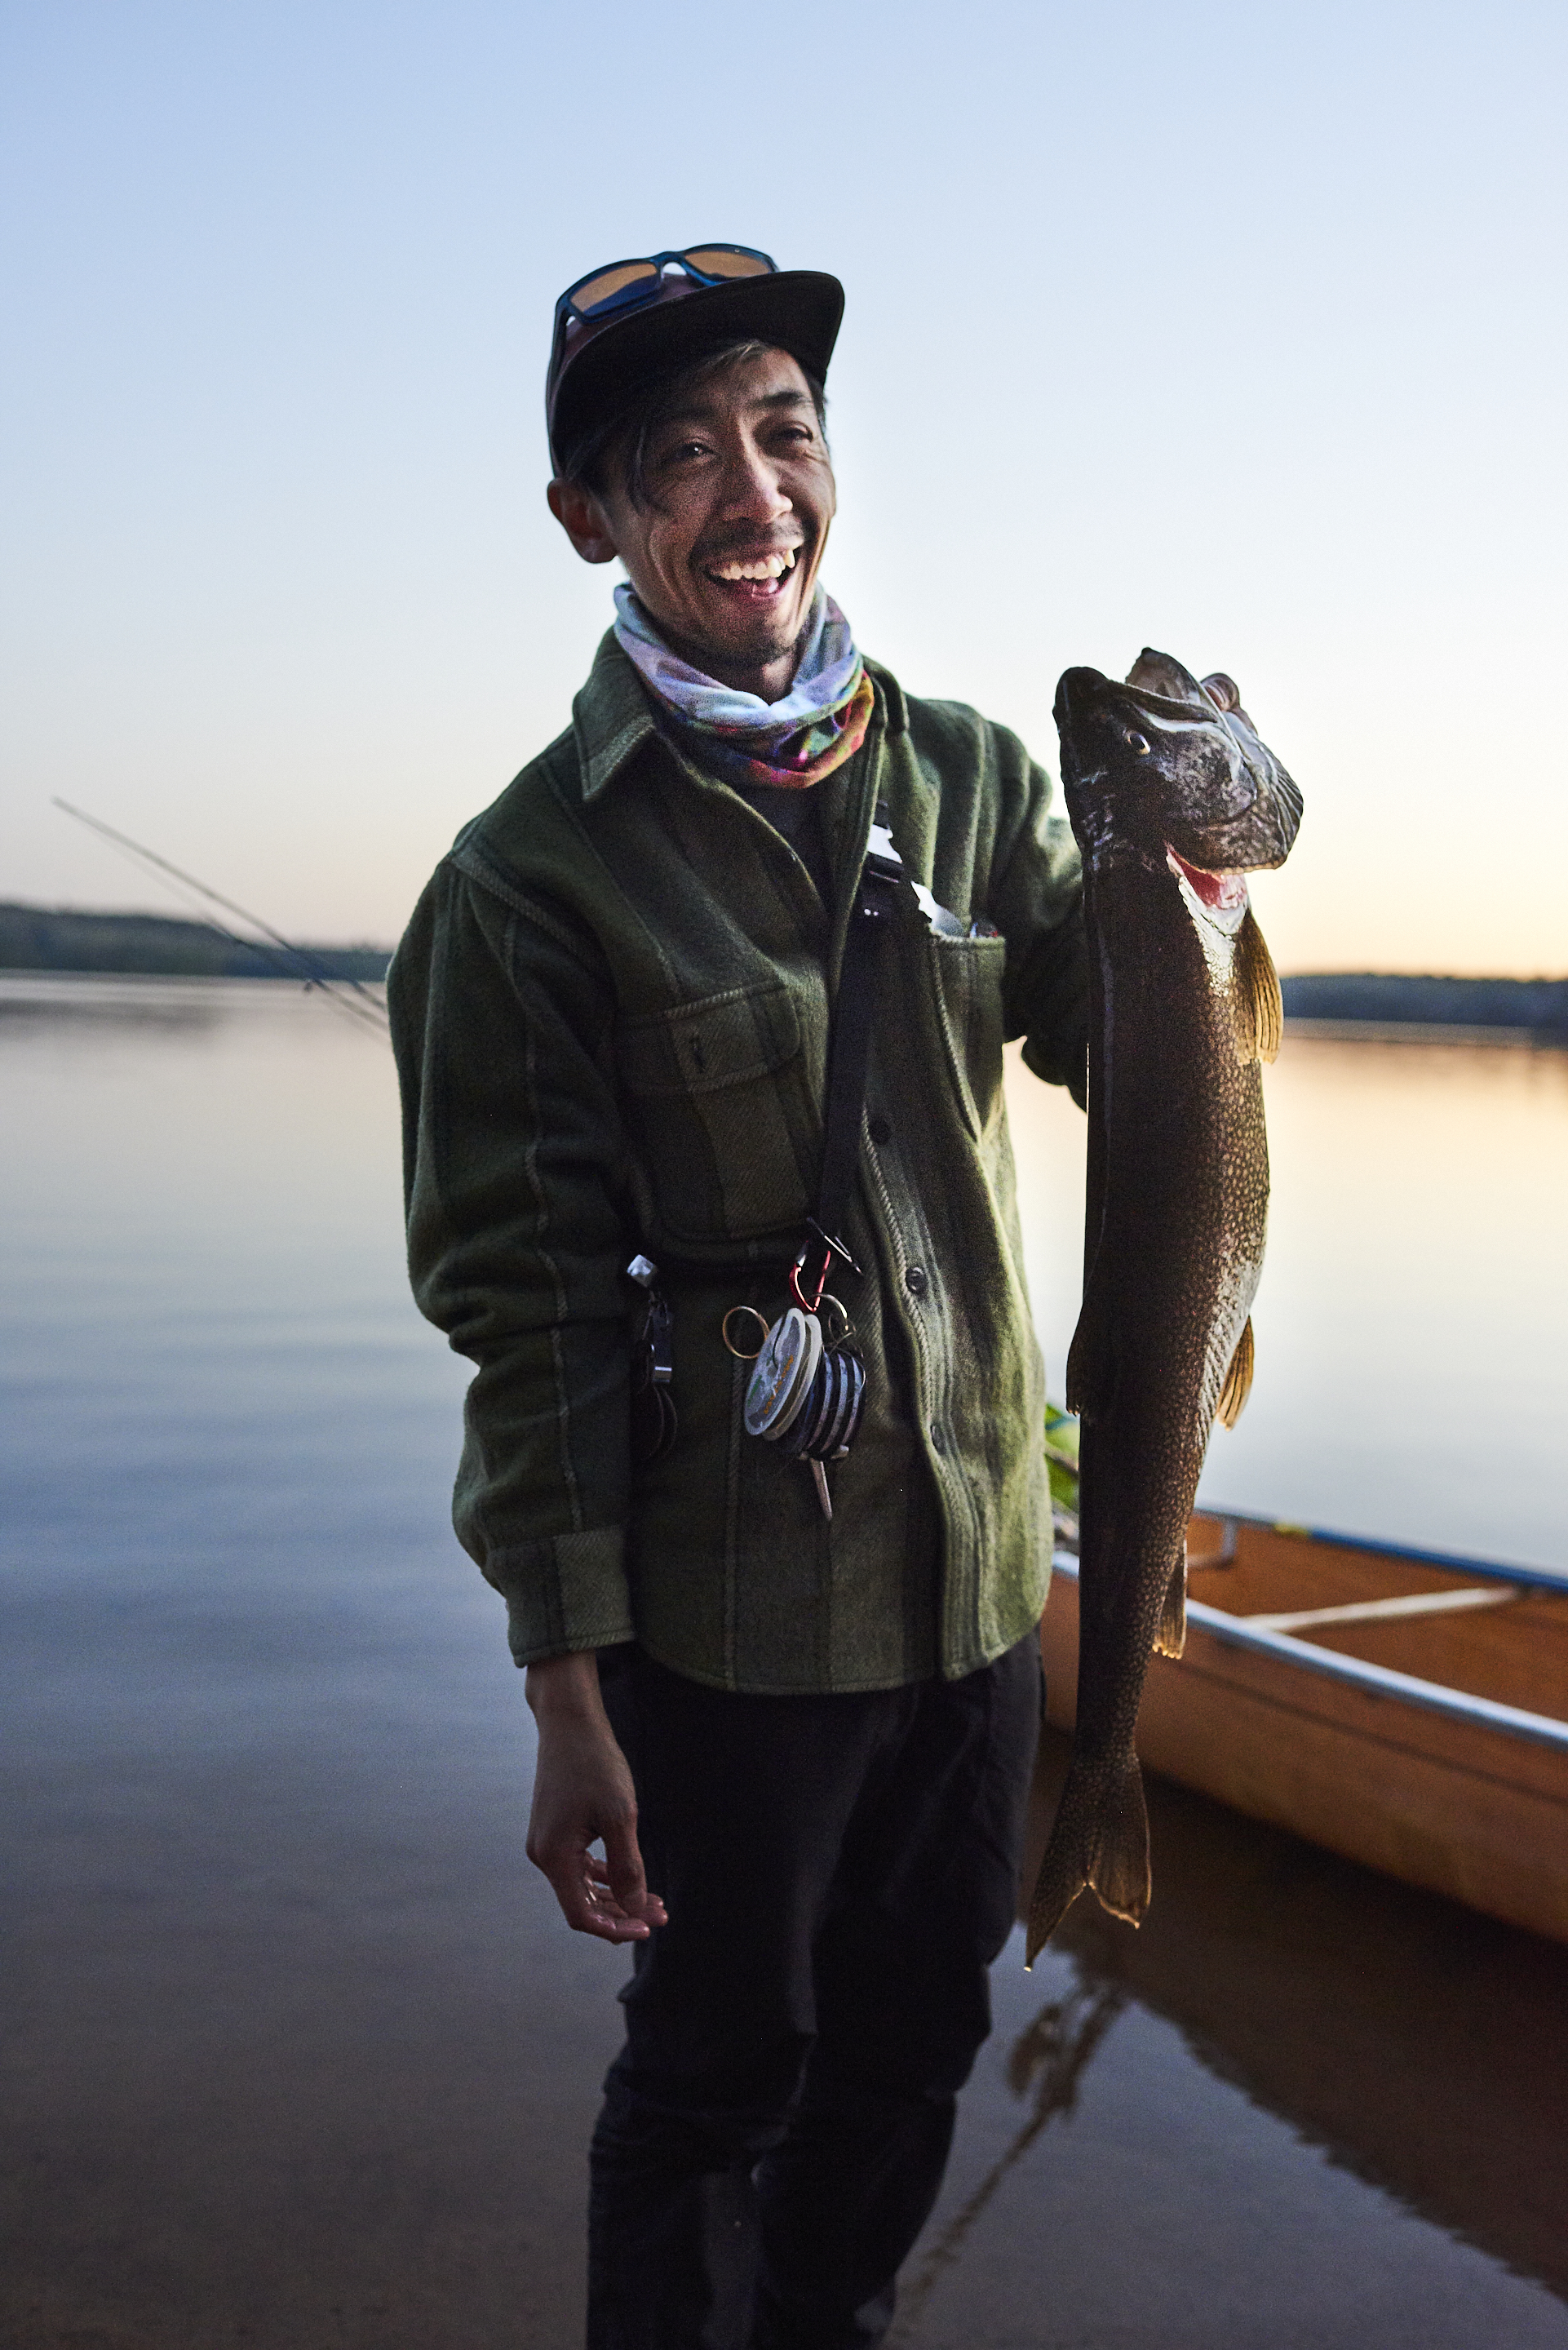 Phu w/ Lake Trout